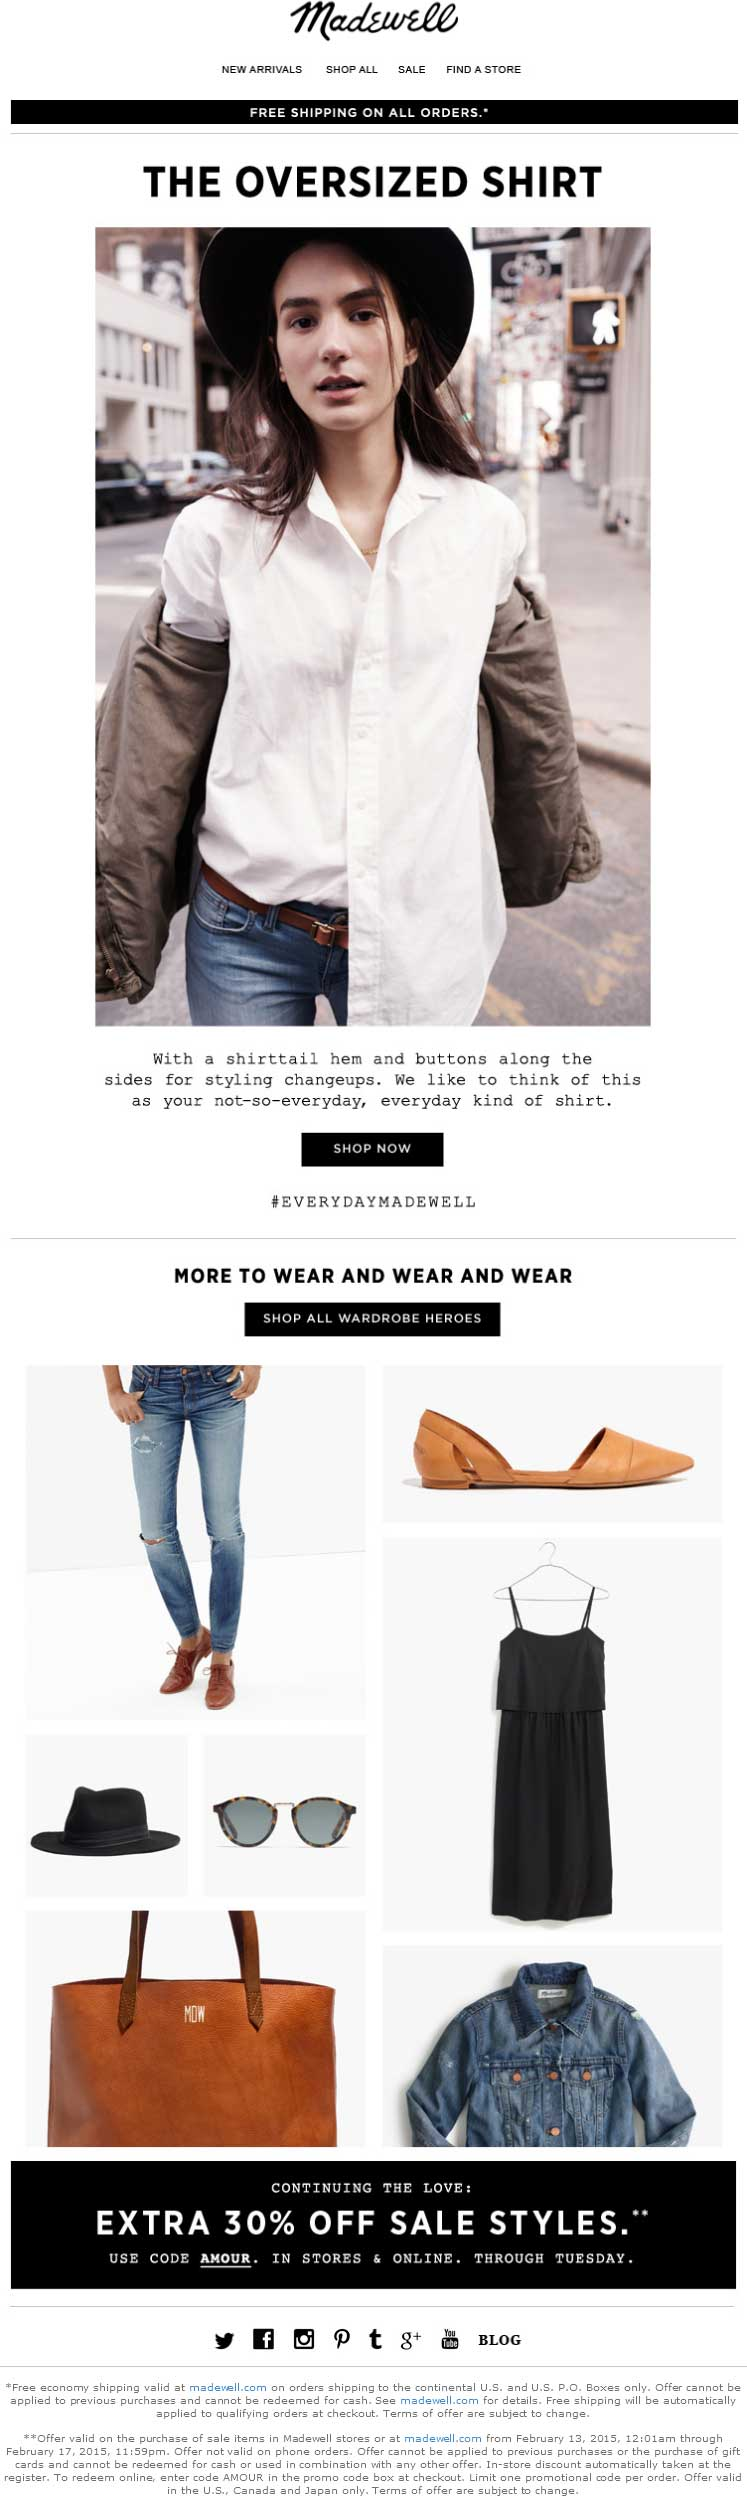 Madewell Coupon April 2017 Extra 30% off sale items at Madewell, or online via promo code AMOUR